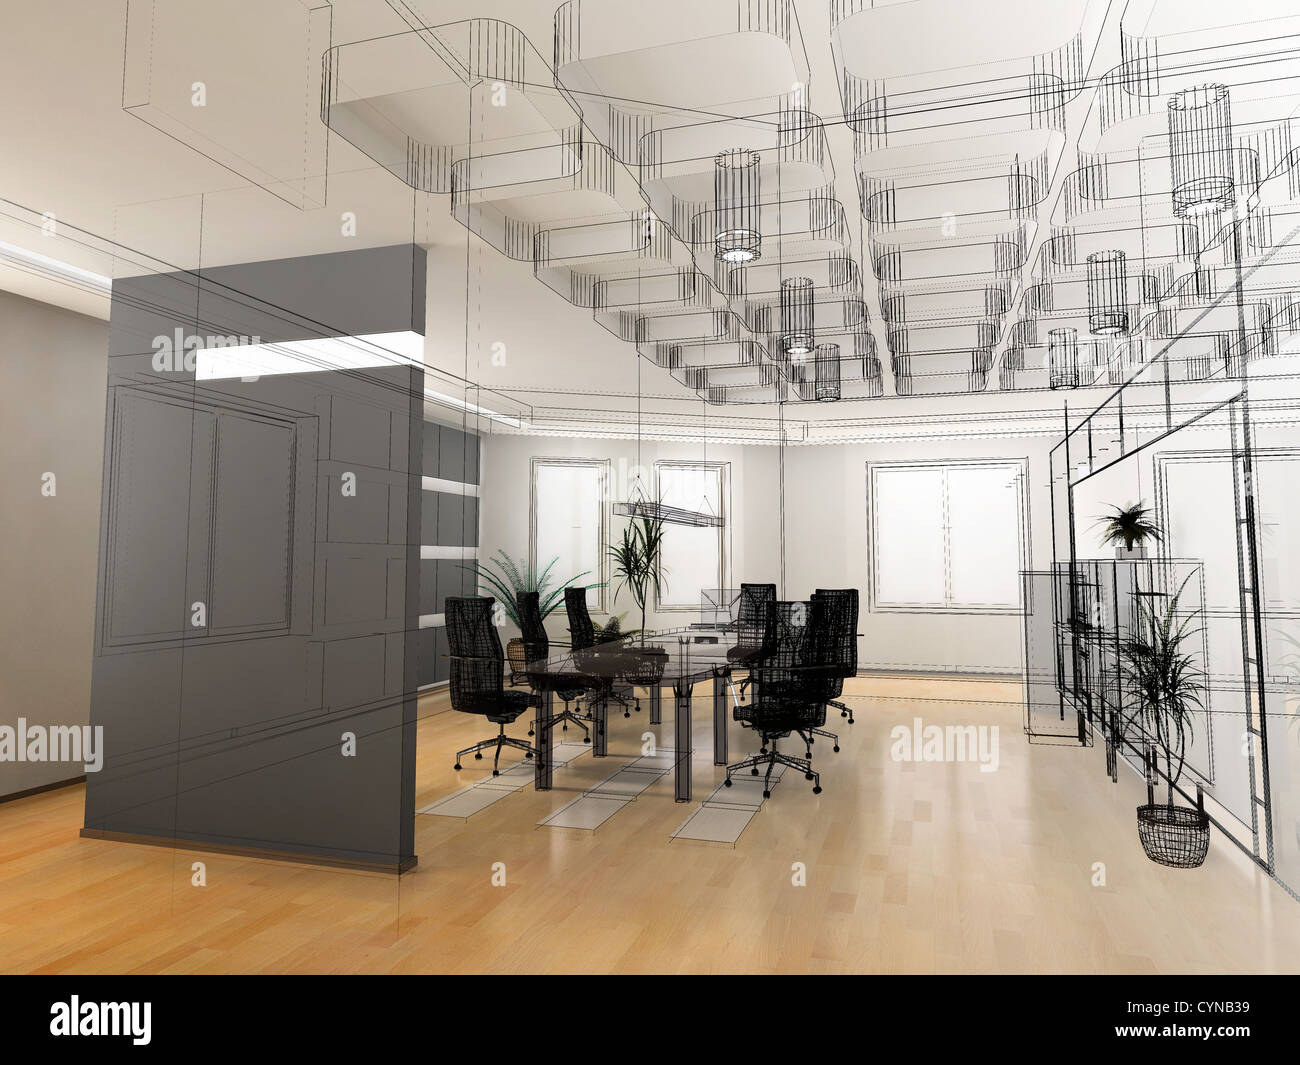 The Modern Office Interior Design Sketch 3d Render Stock Photo